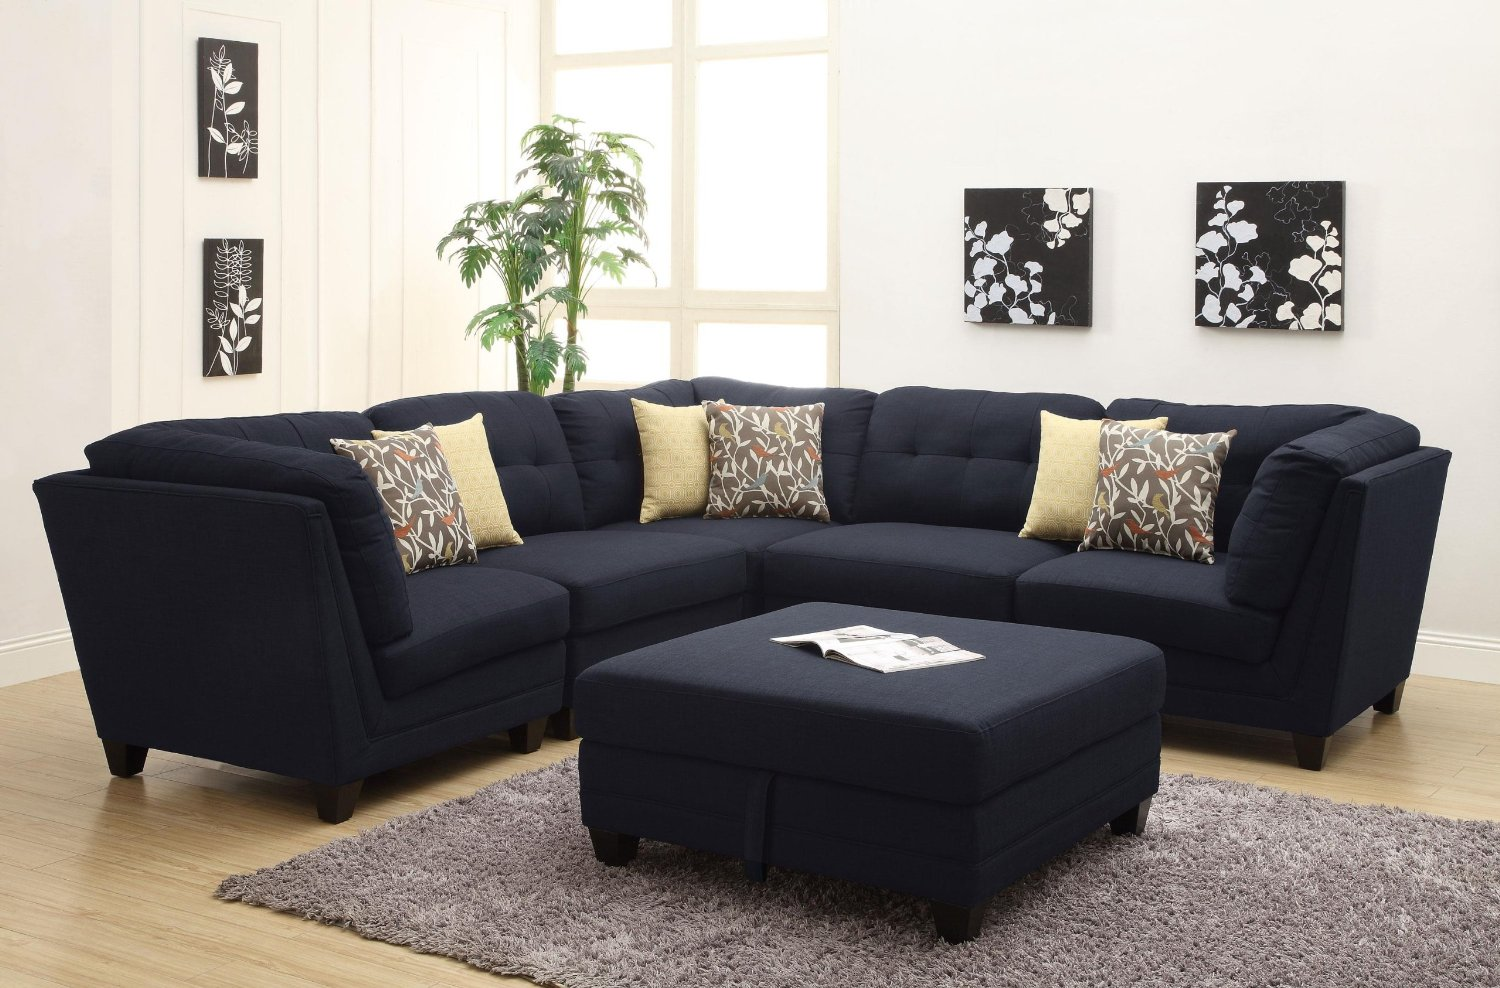 Most comfortable sofas homesfeed for Black fabric couches